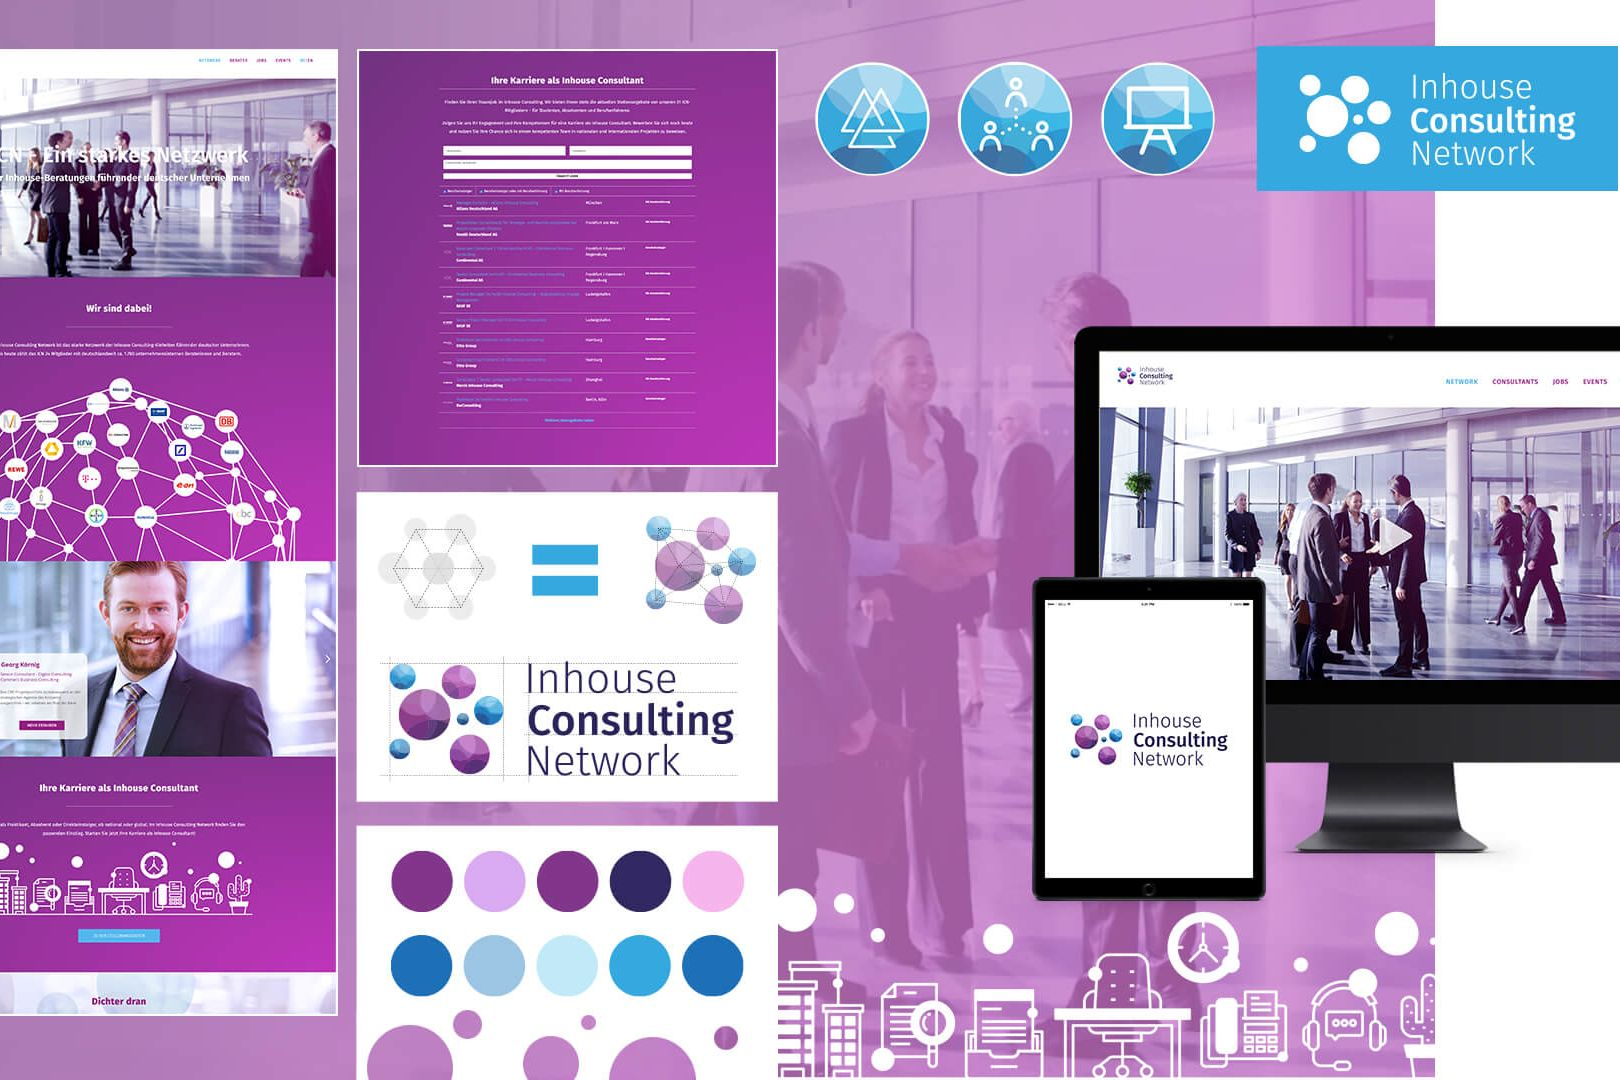 Inhouse Consulting Network